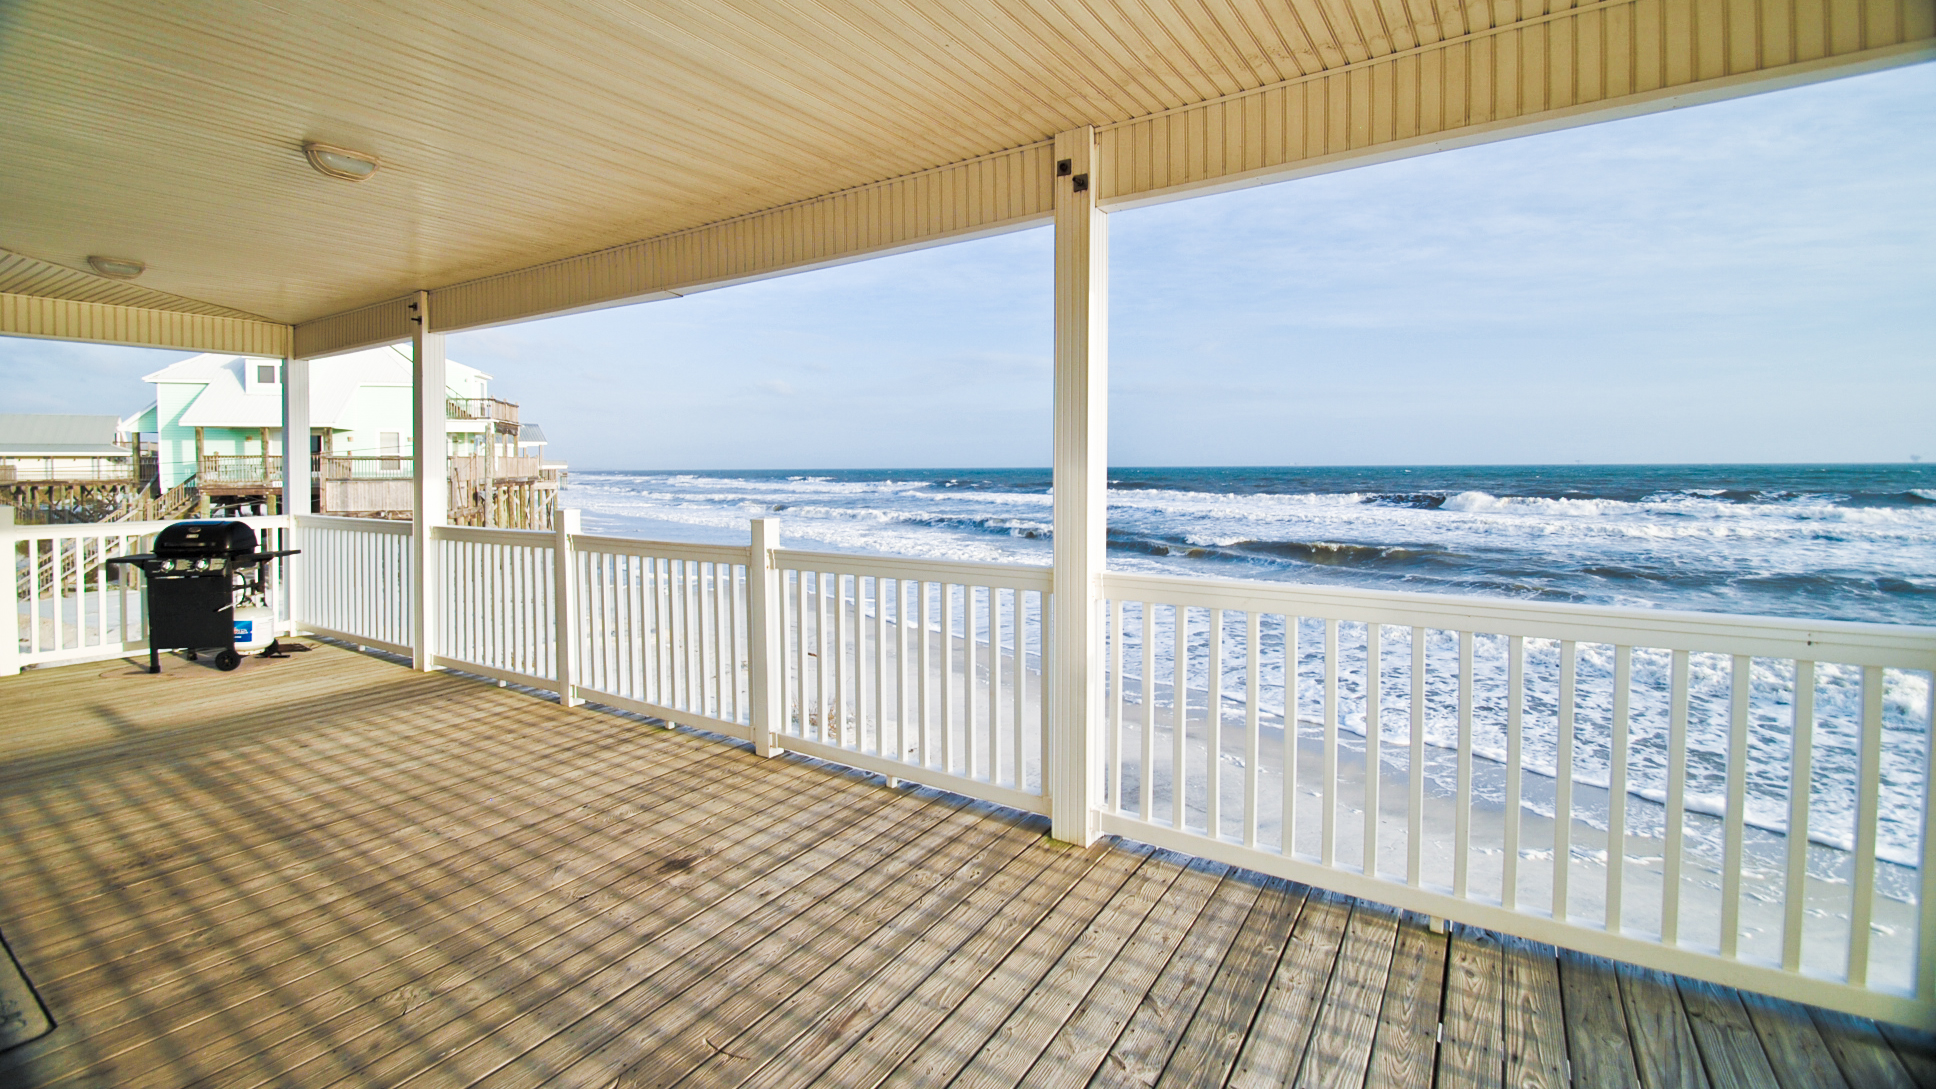 Dauphin Island Rentals- Find the Perfect Dauphin Island Vacation Rental